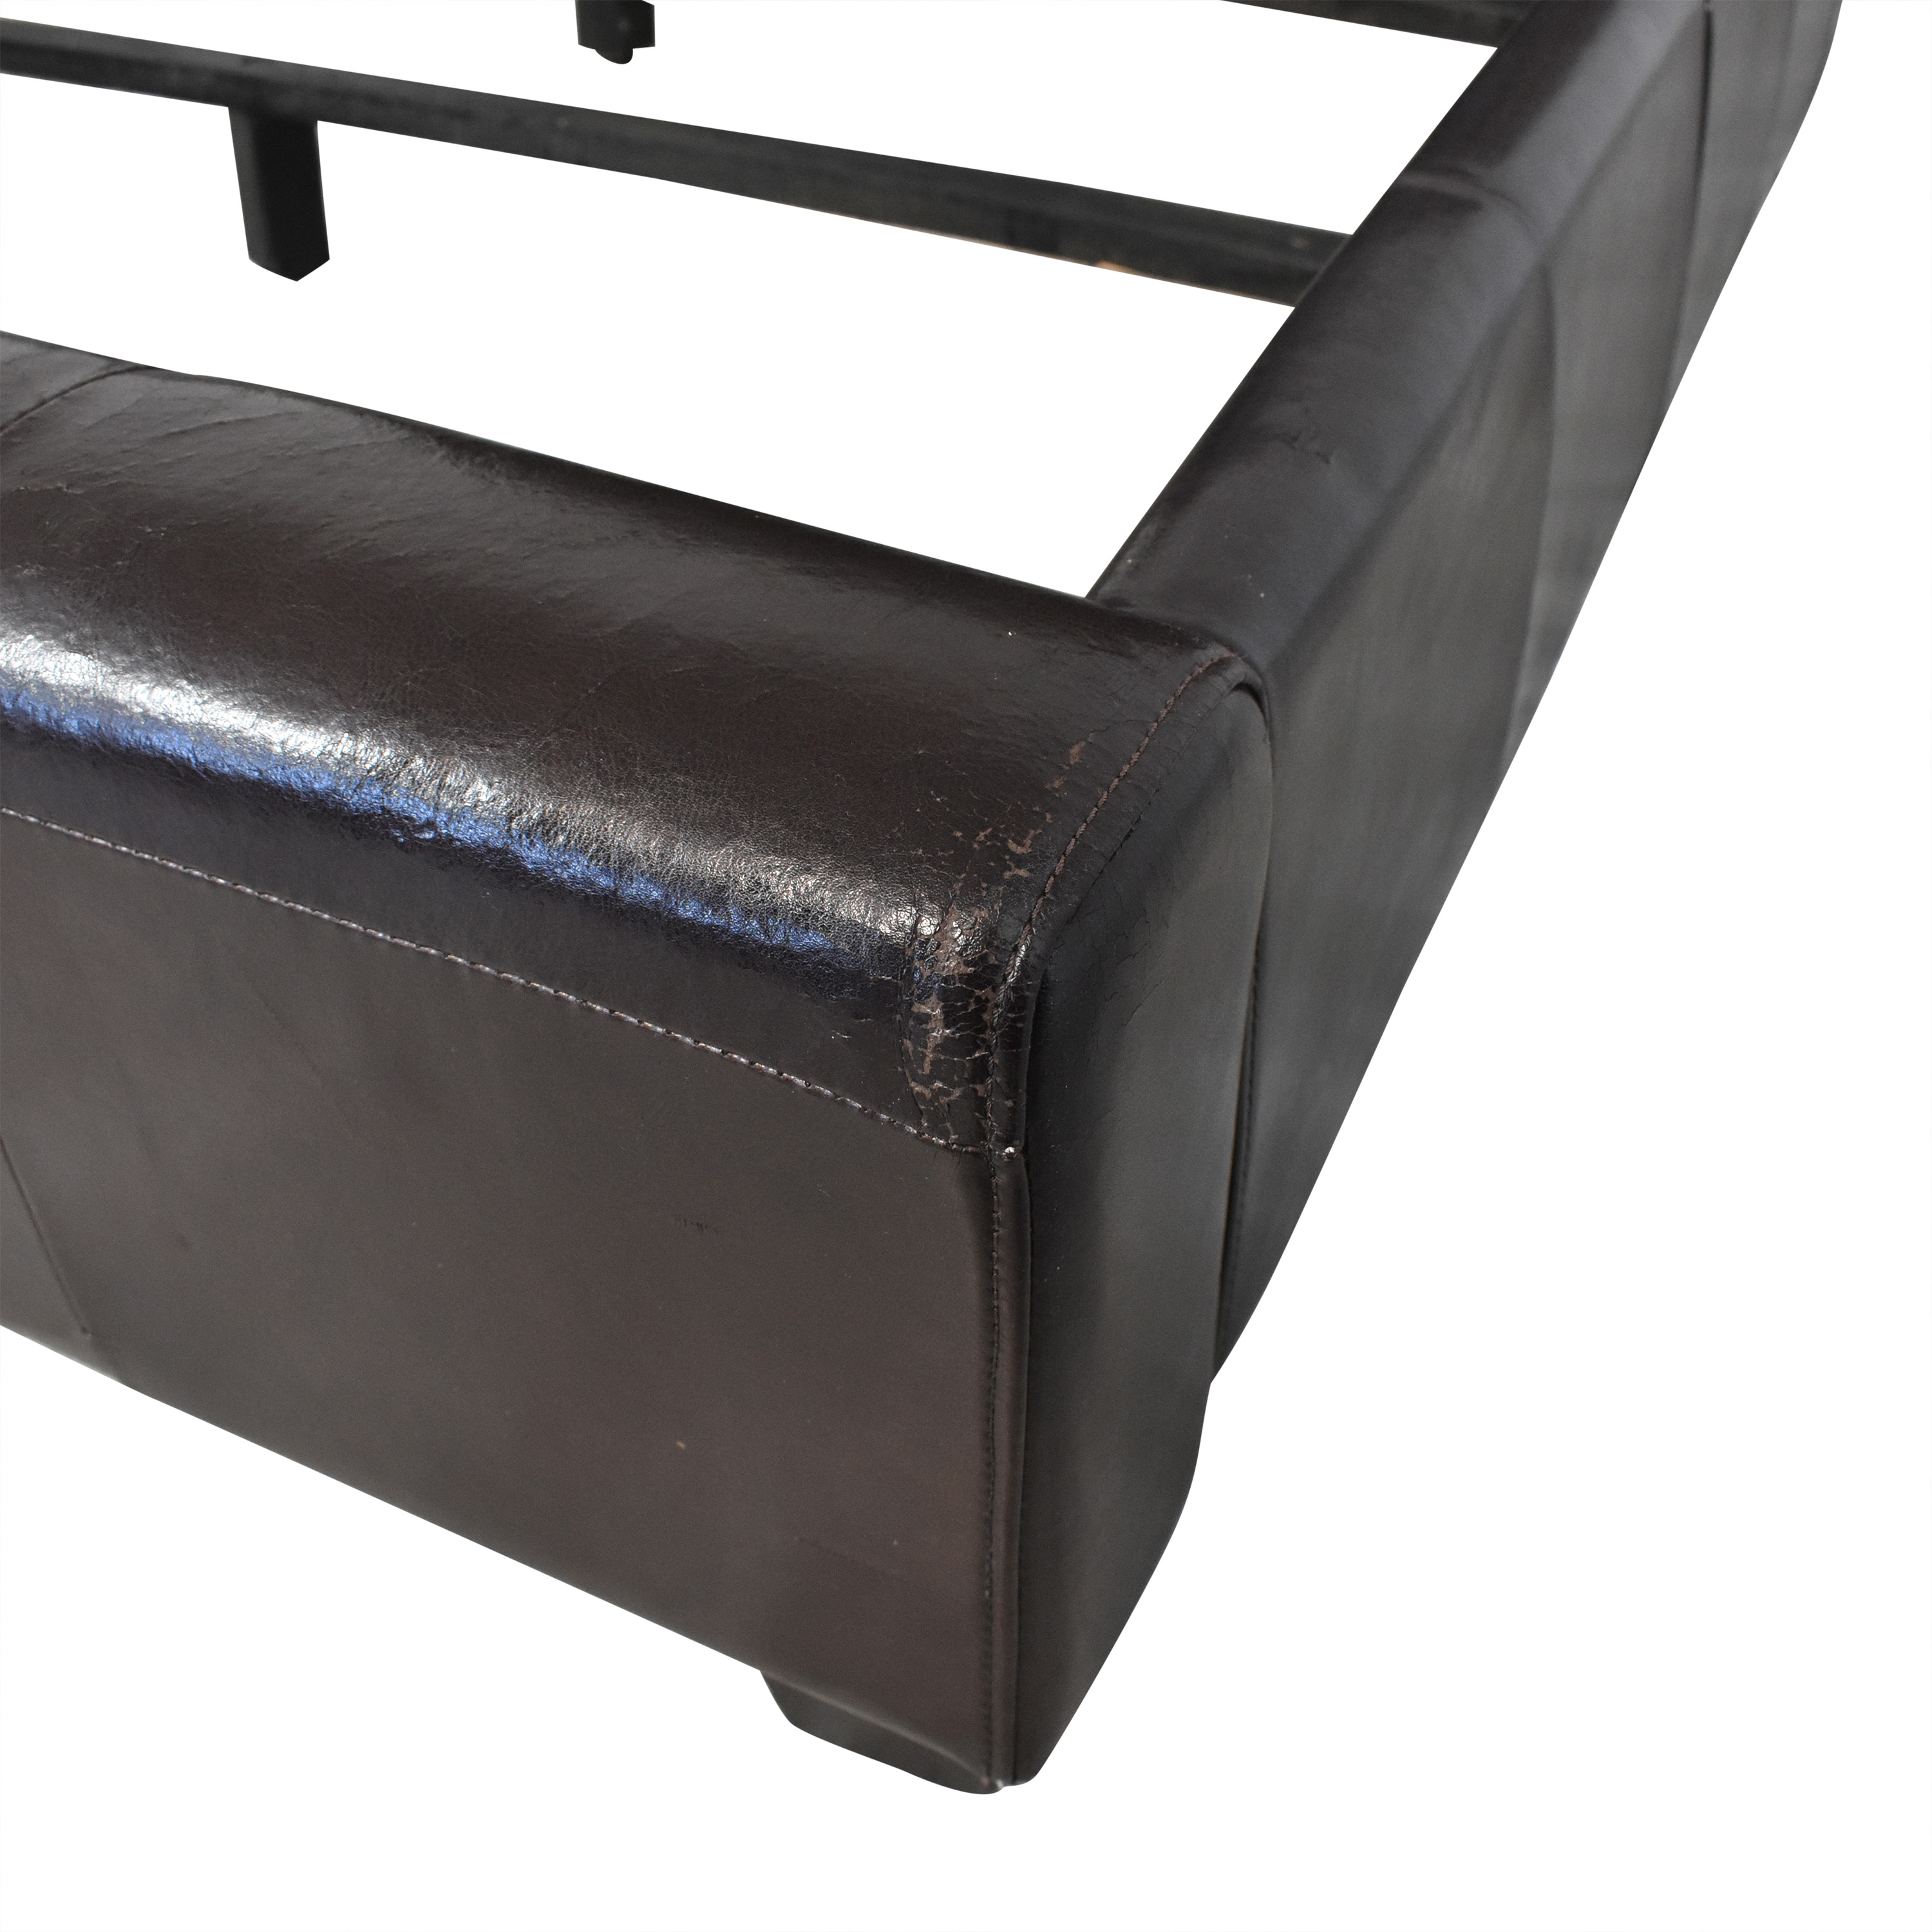 buy Macy's Tufted Leather Queen Size Bed Macy's Bed Frames